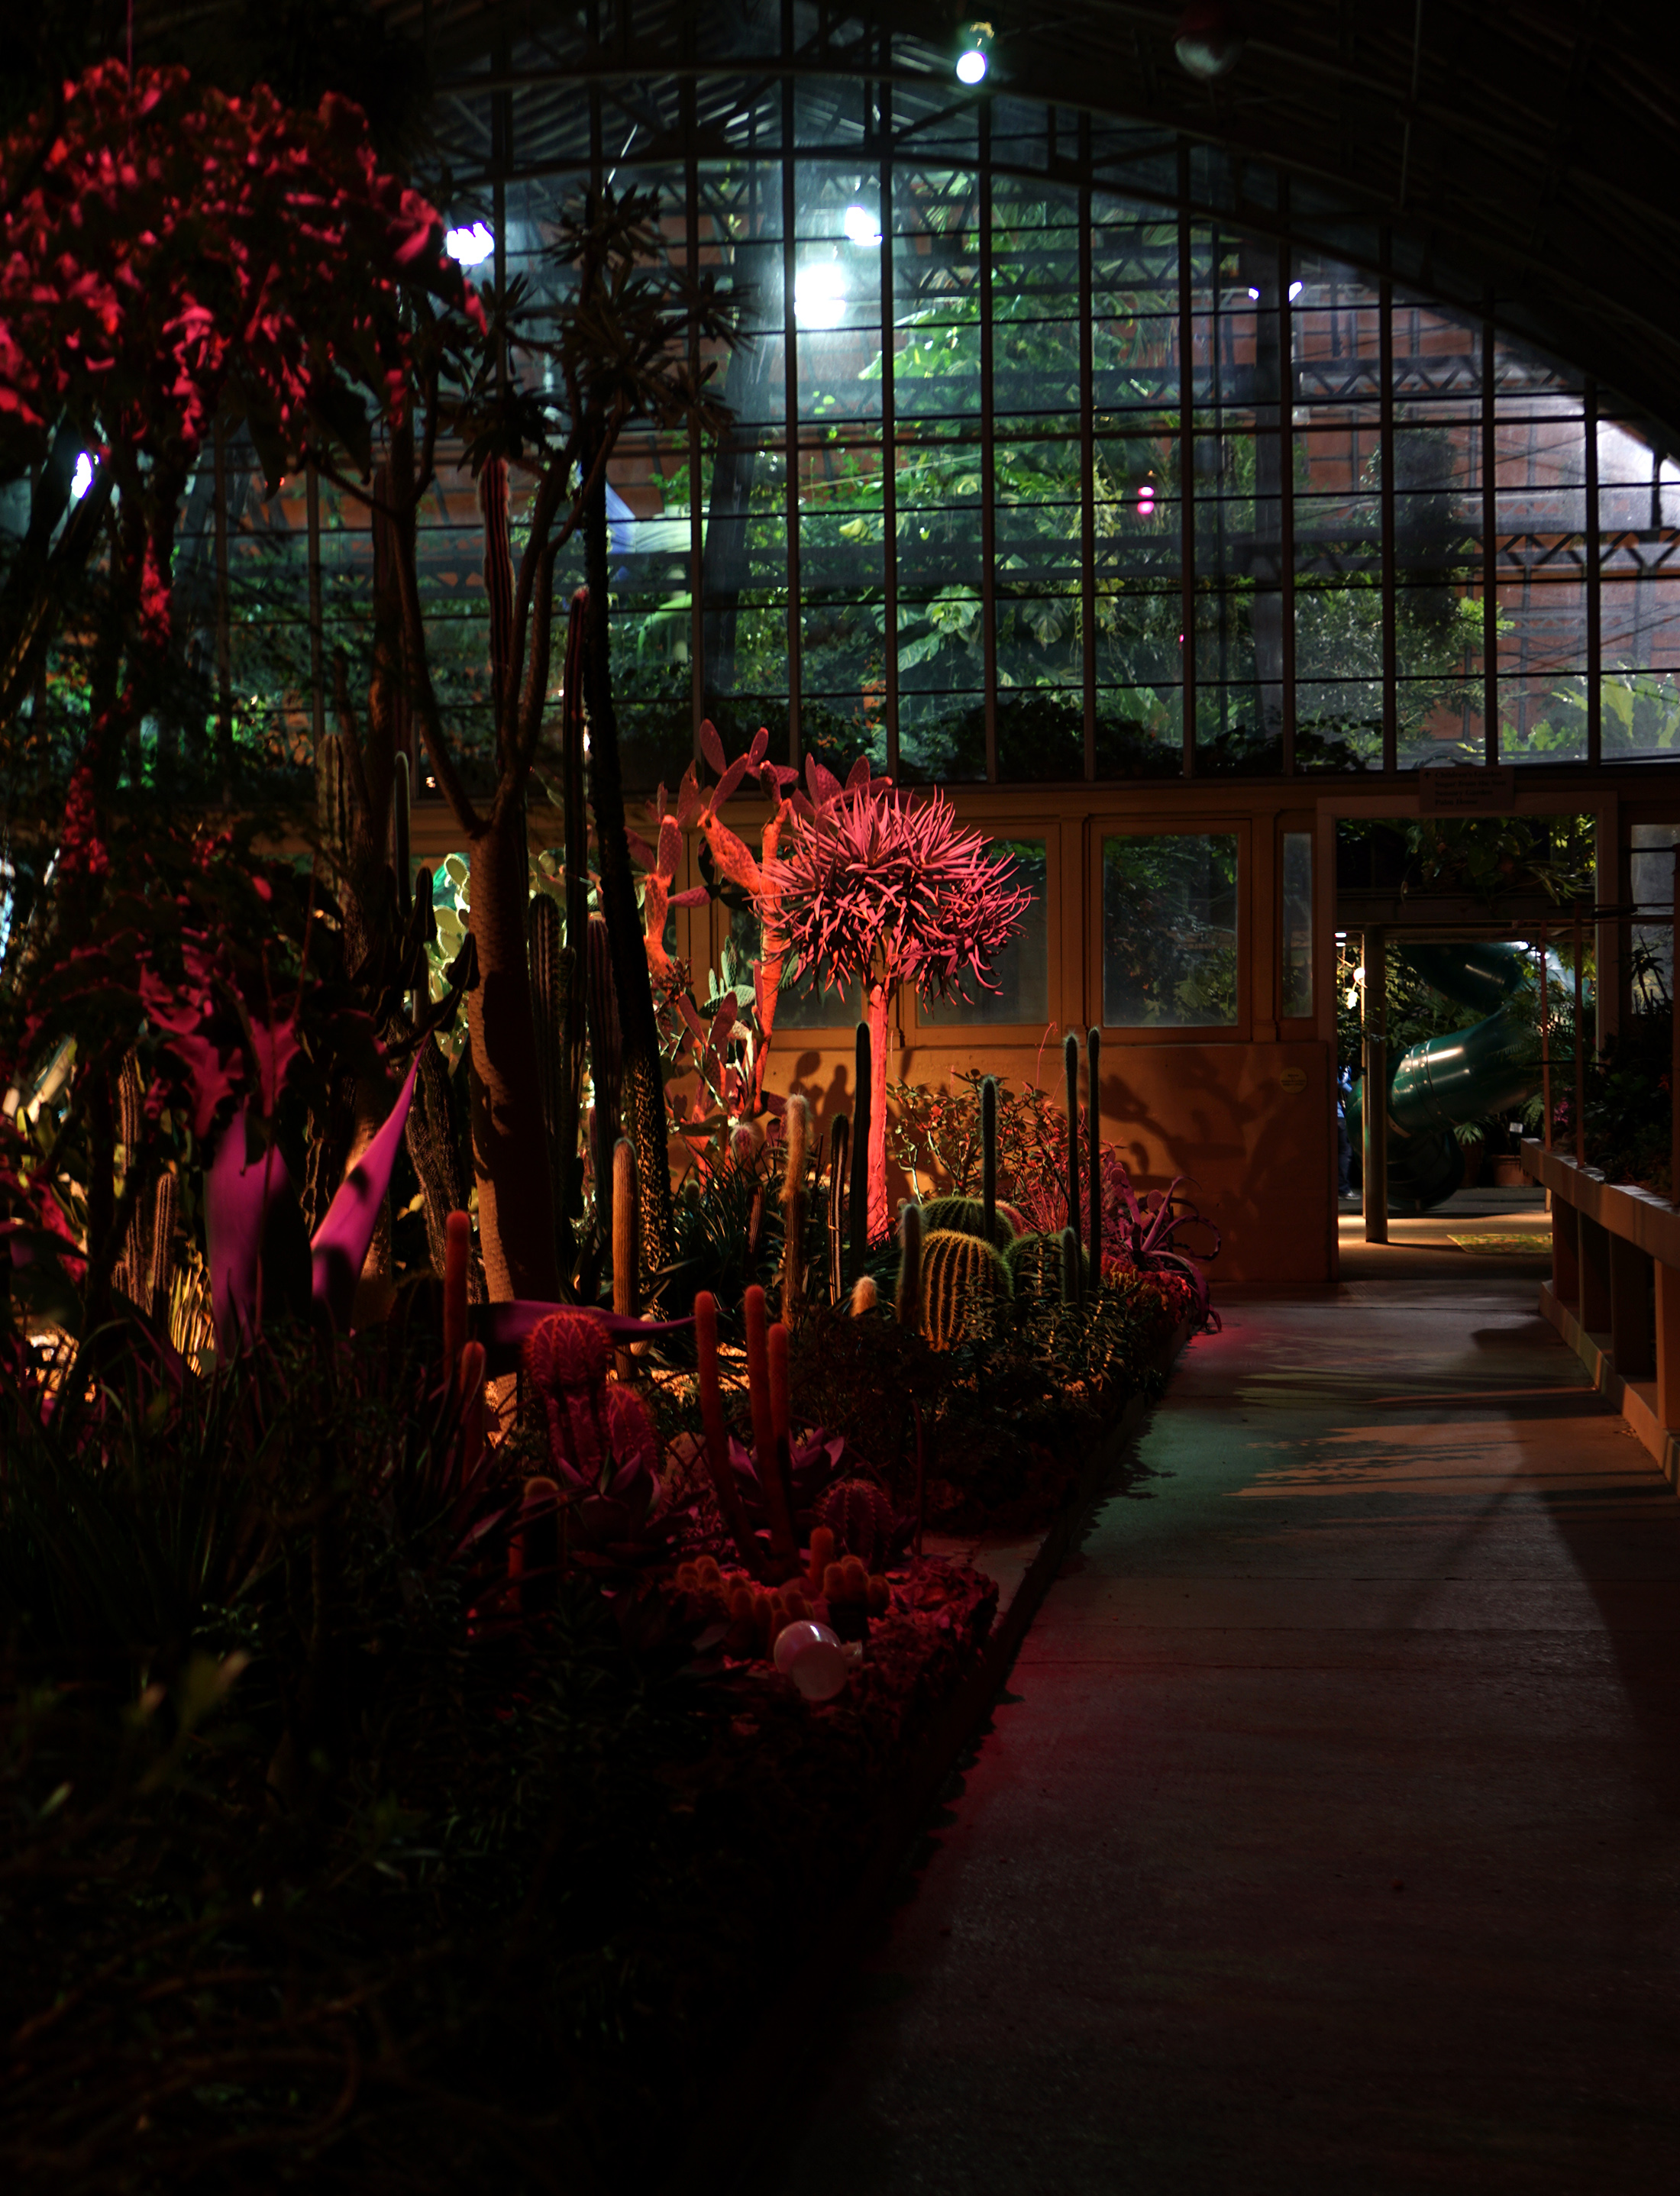 The desert room, Garfield Park Conservatory at night, Chicago / Darker than Green